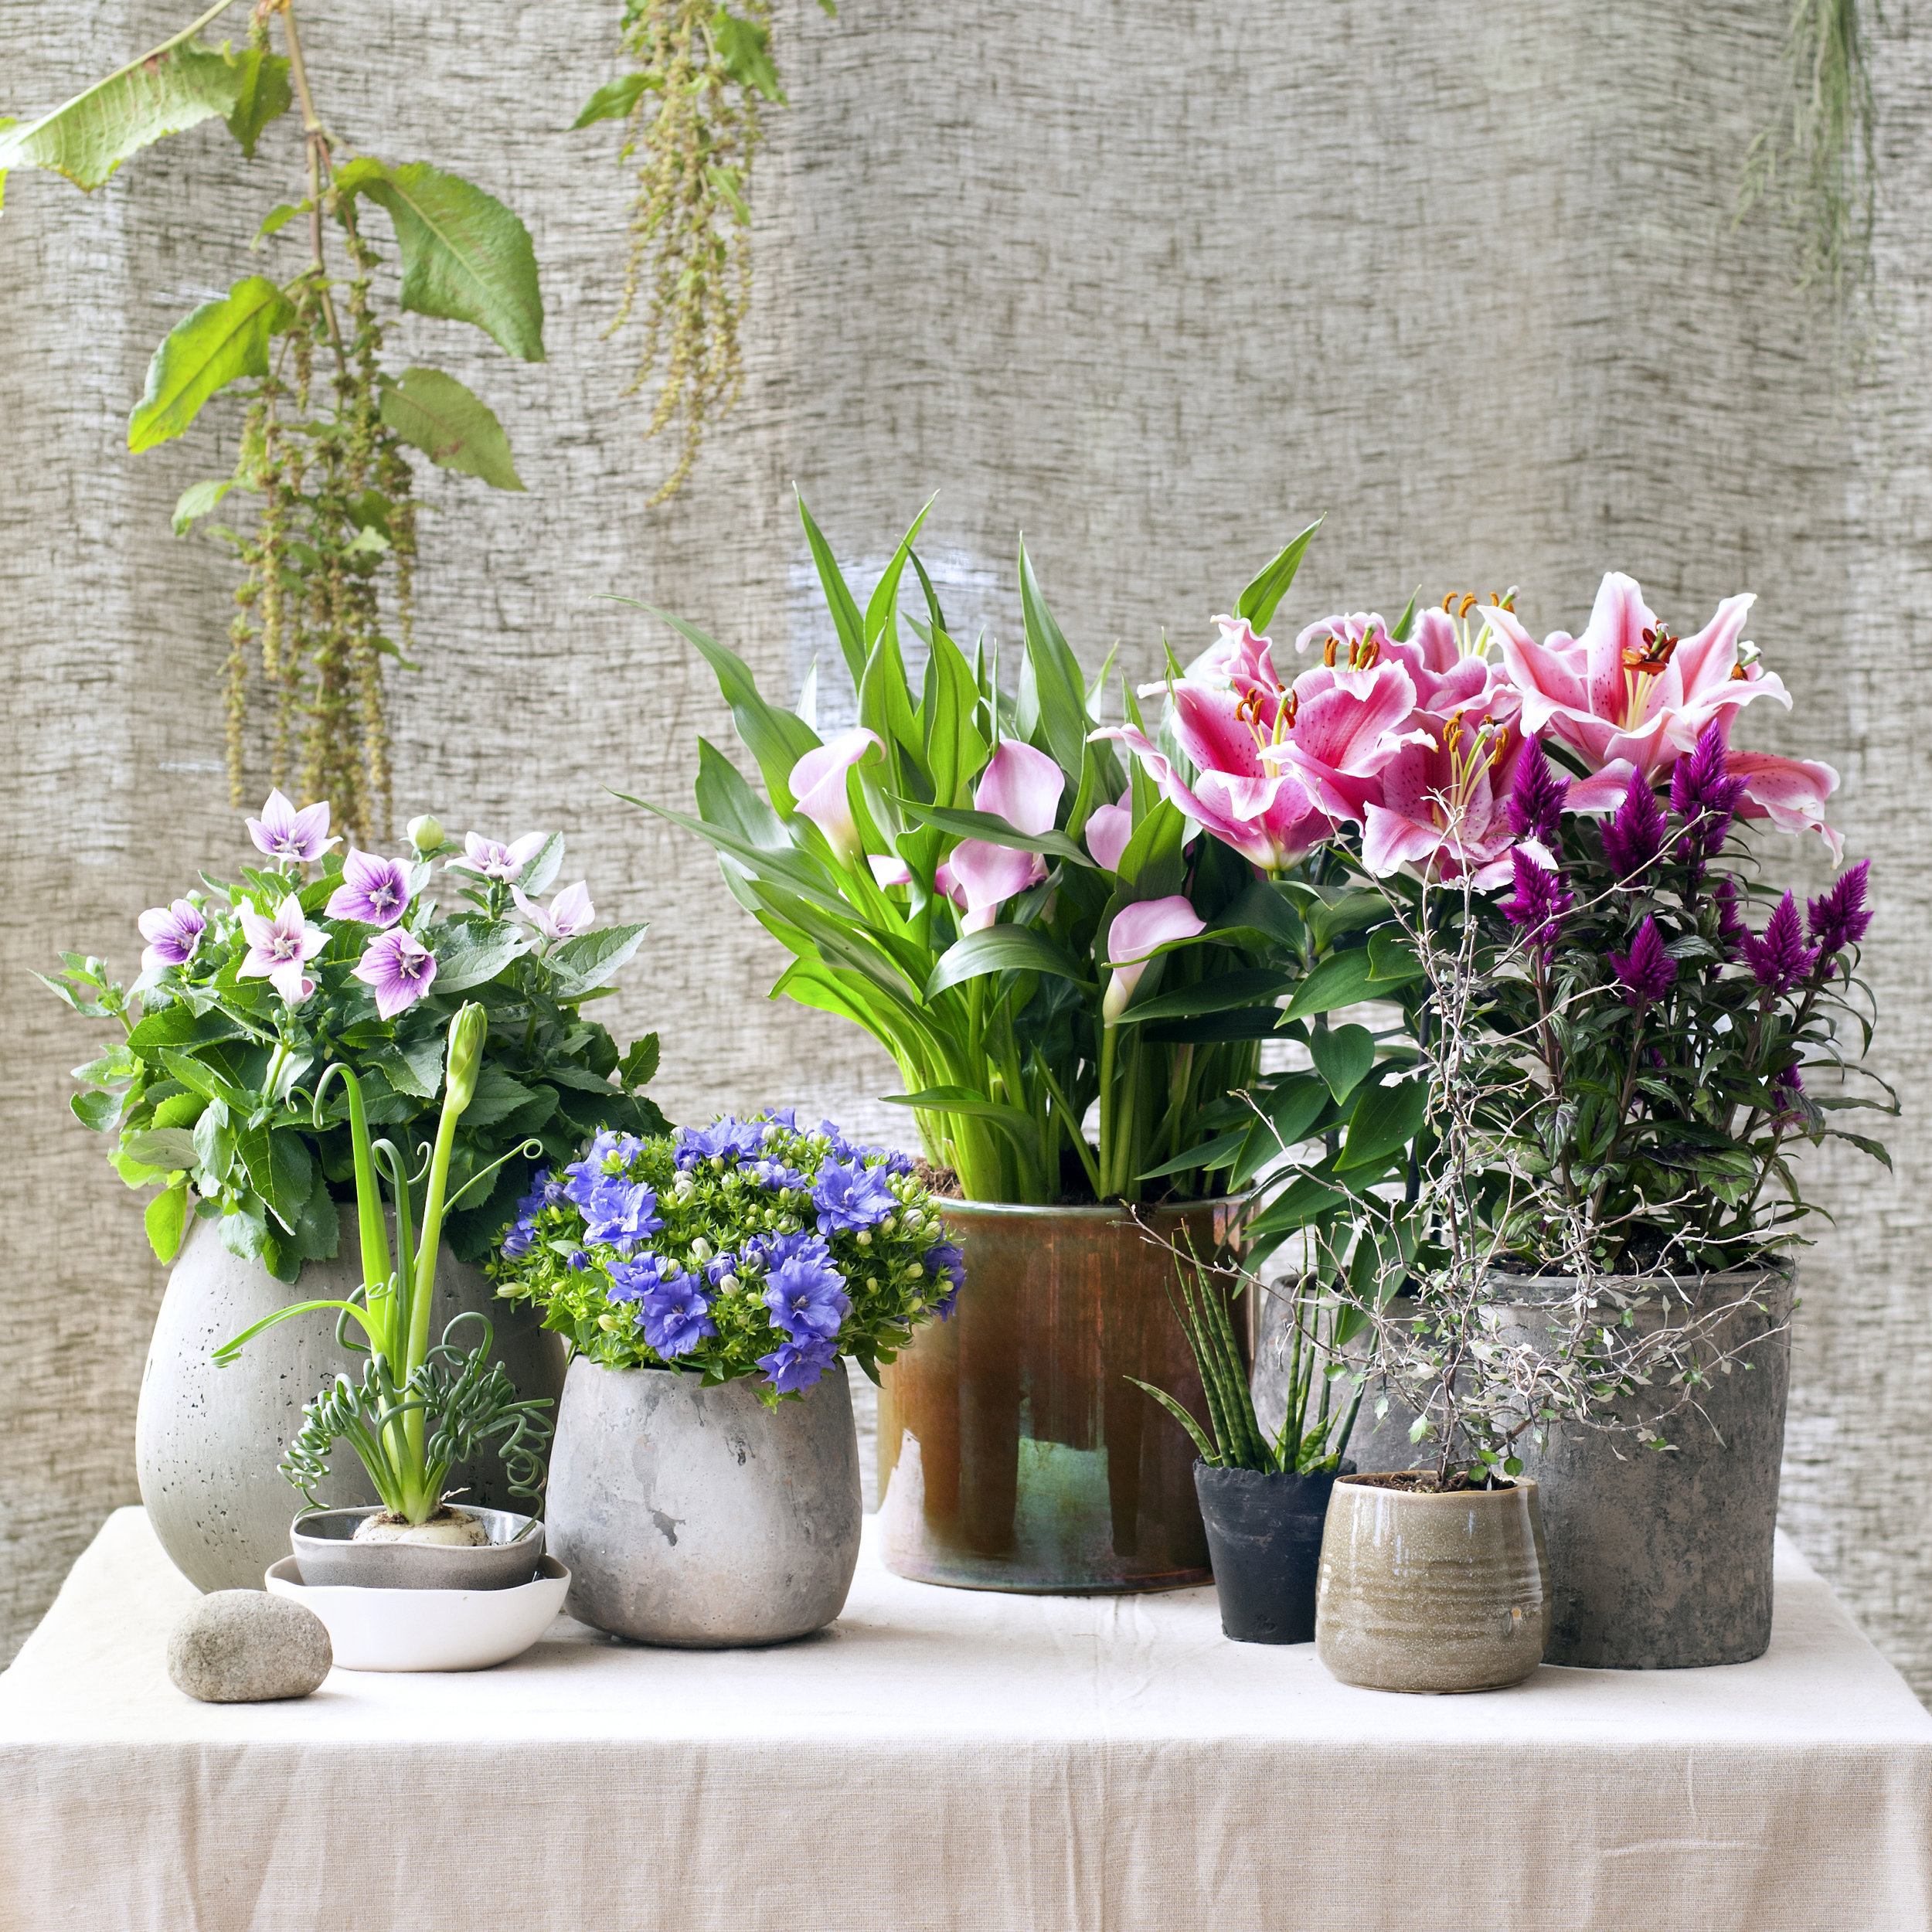 lilac_thyme-in_out_flowers_pots.jpg